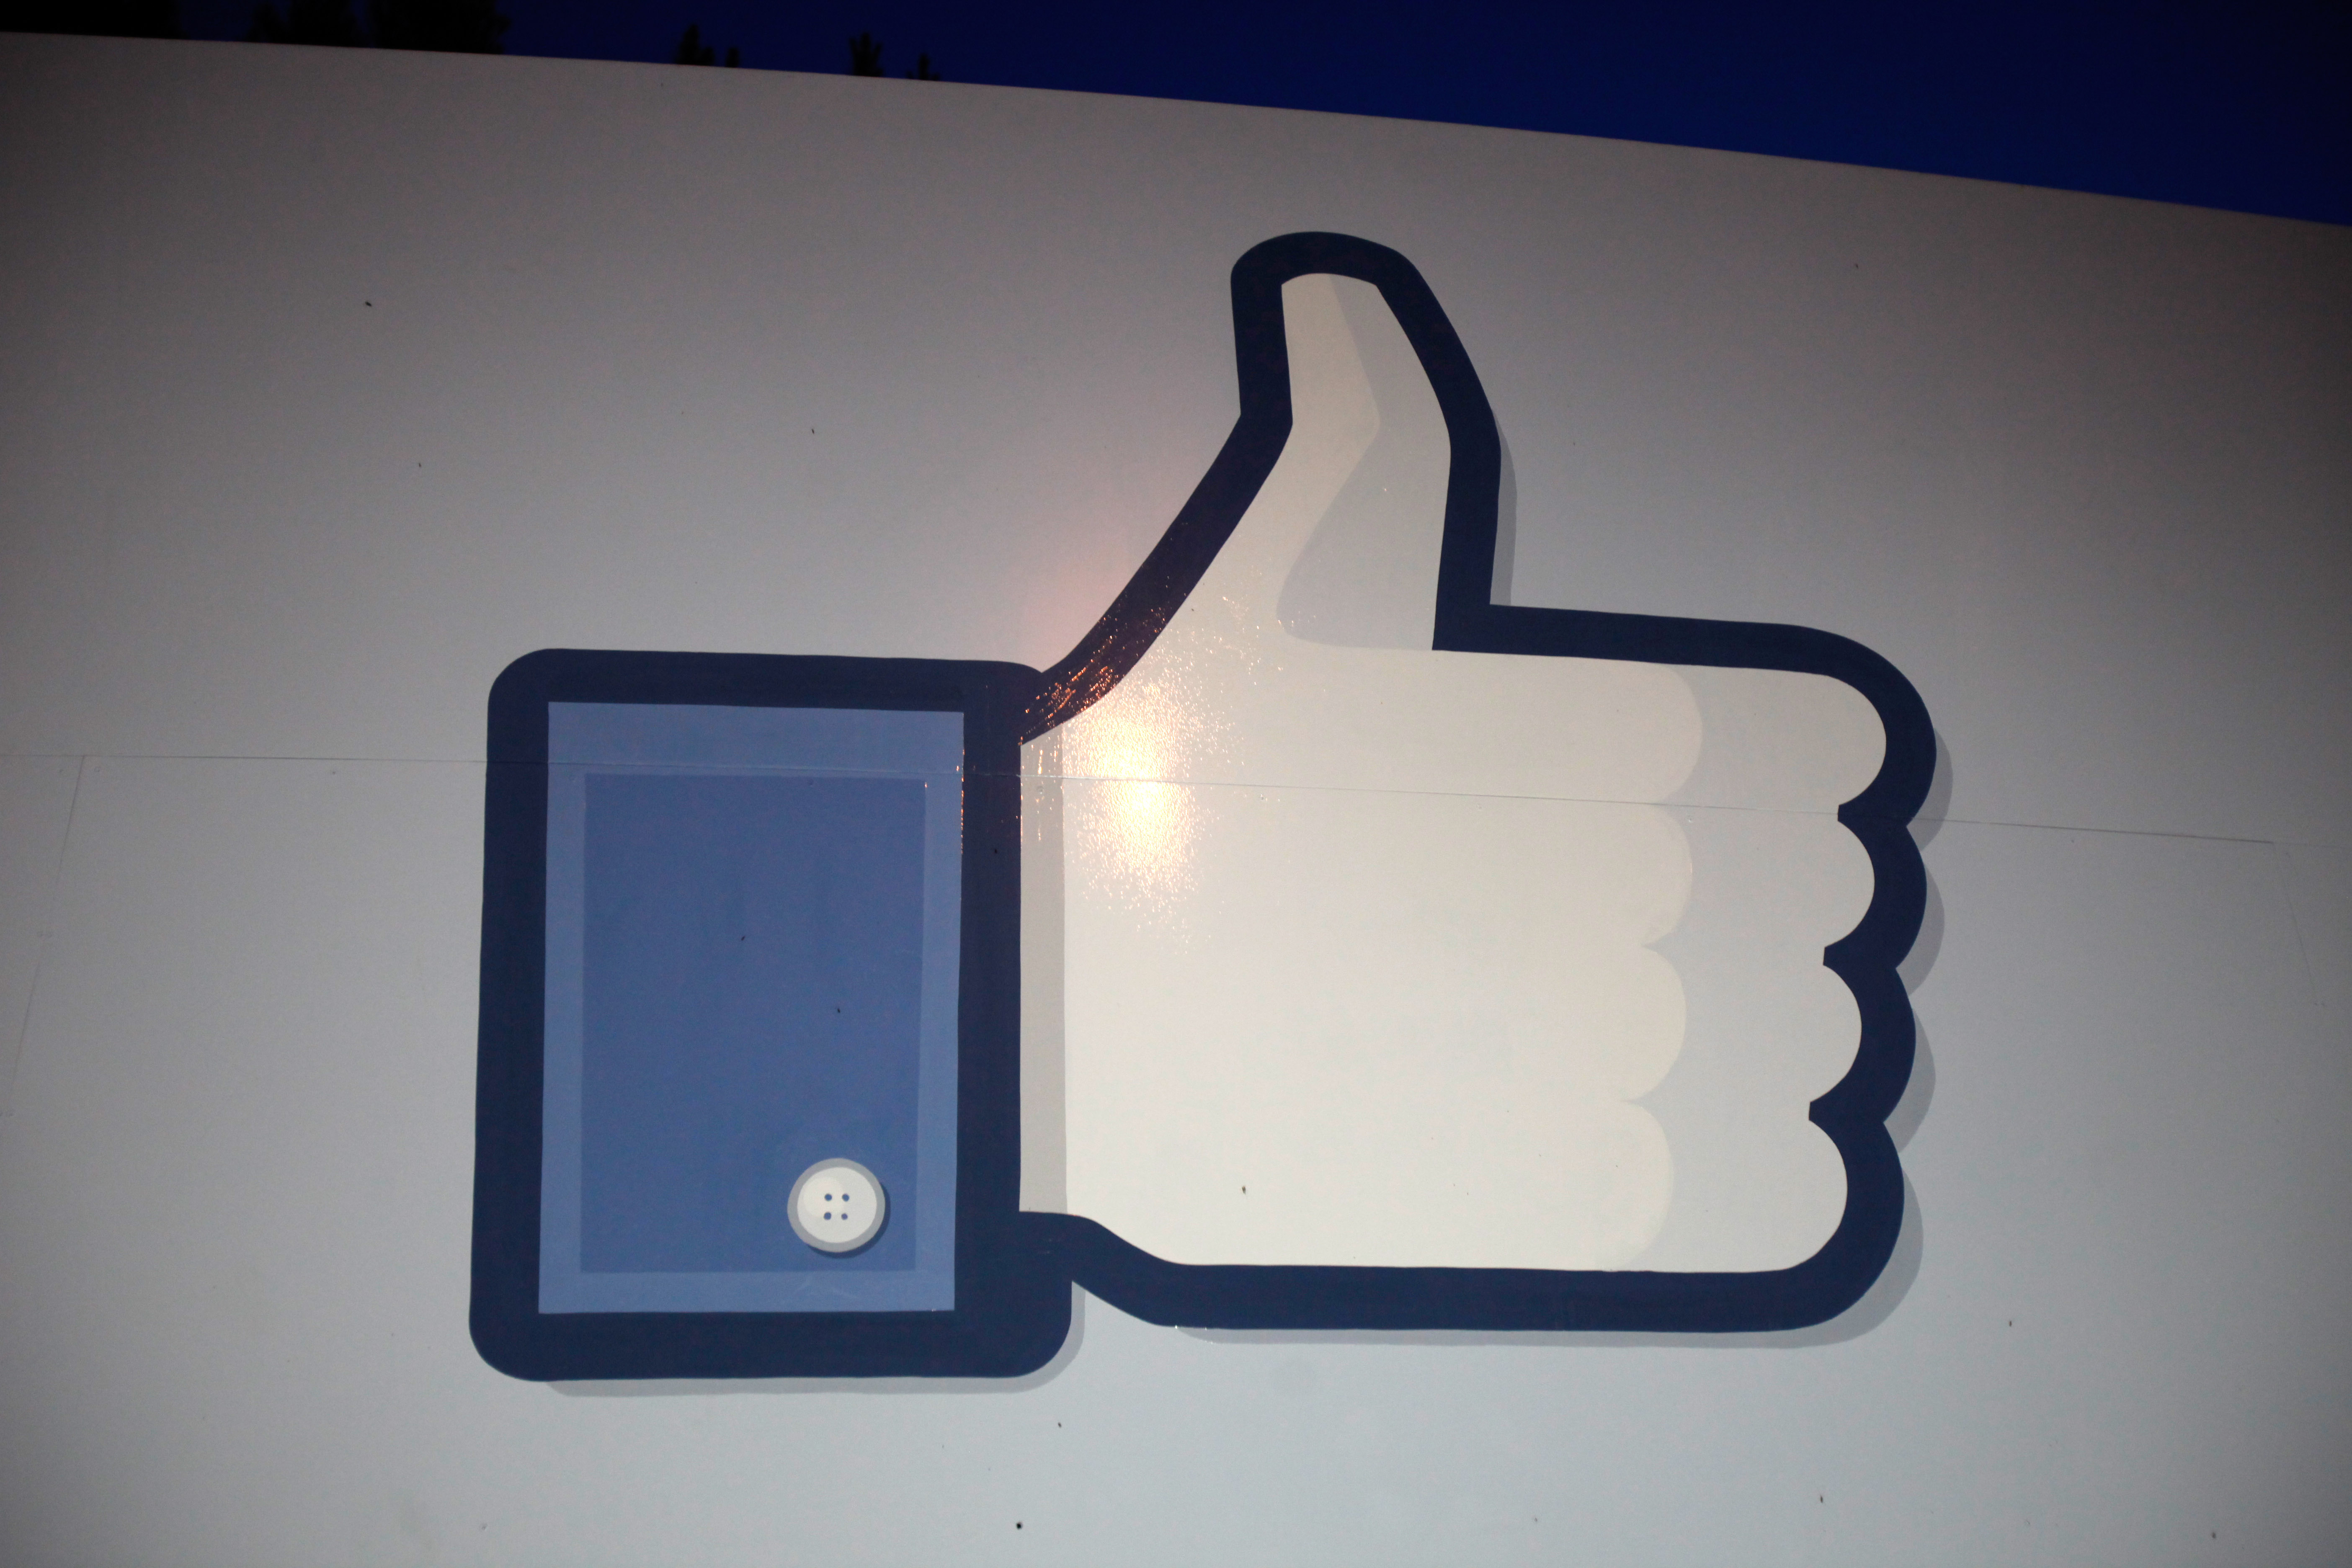 Facebook now allows you to use emoticons in News Feed comments